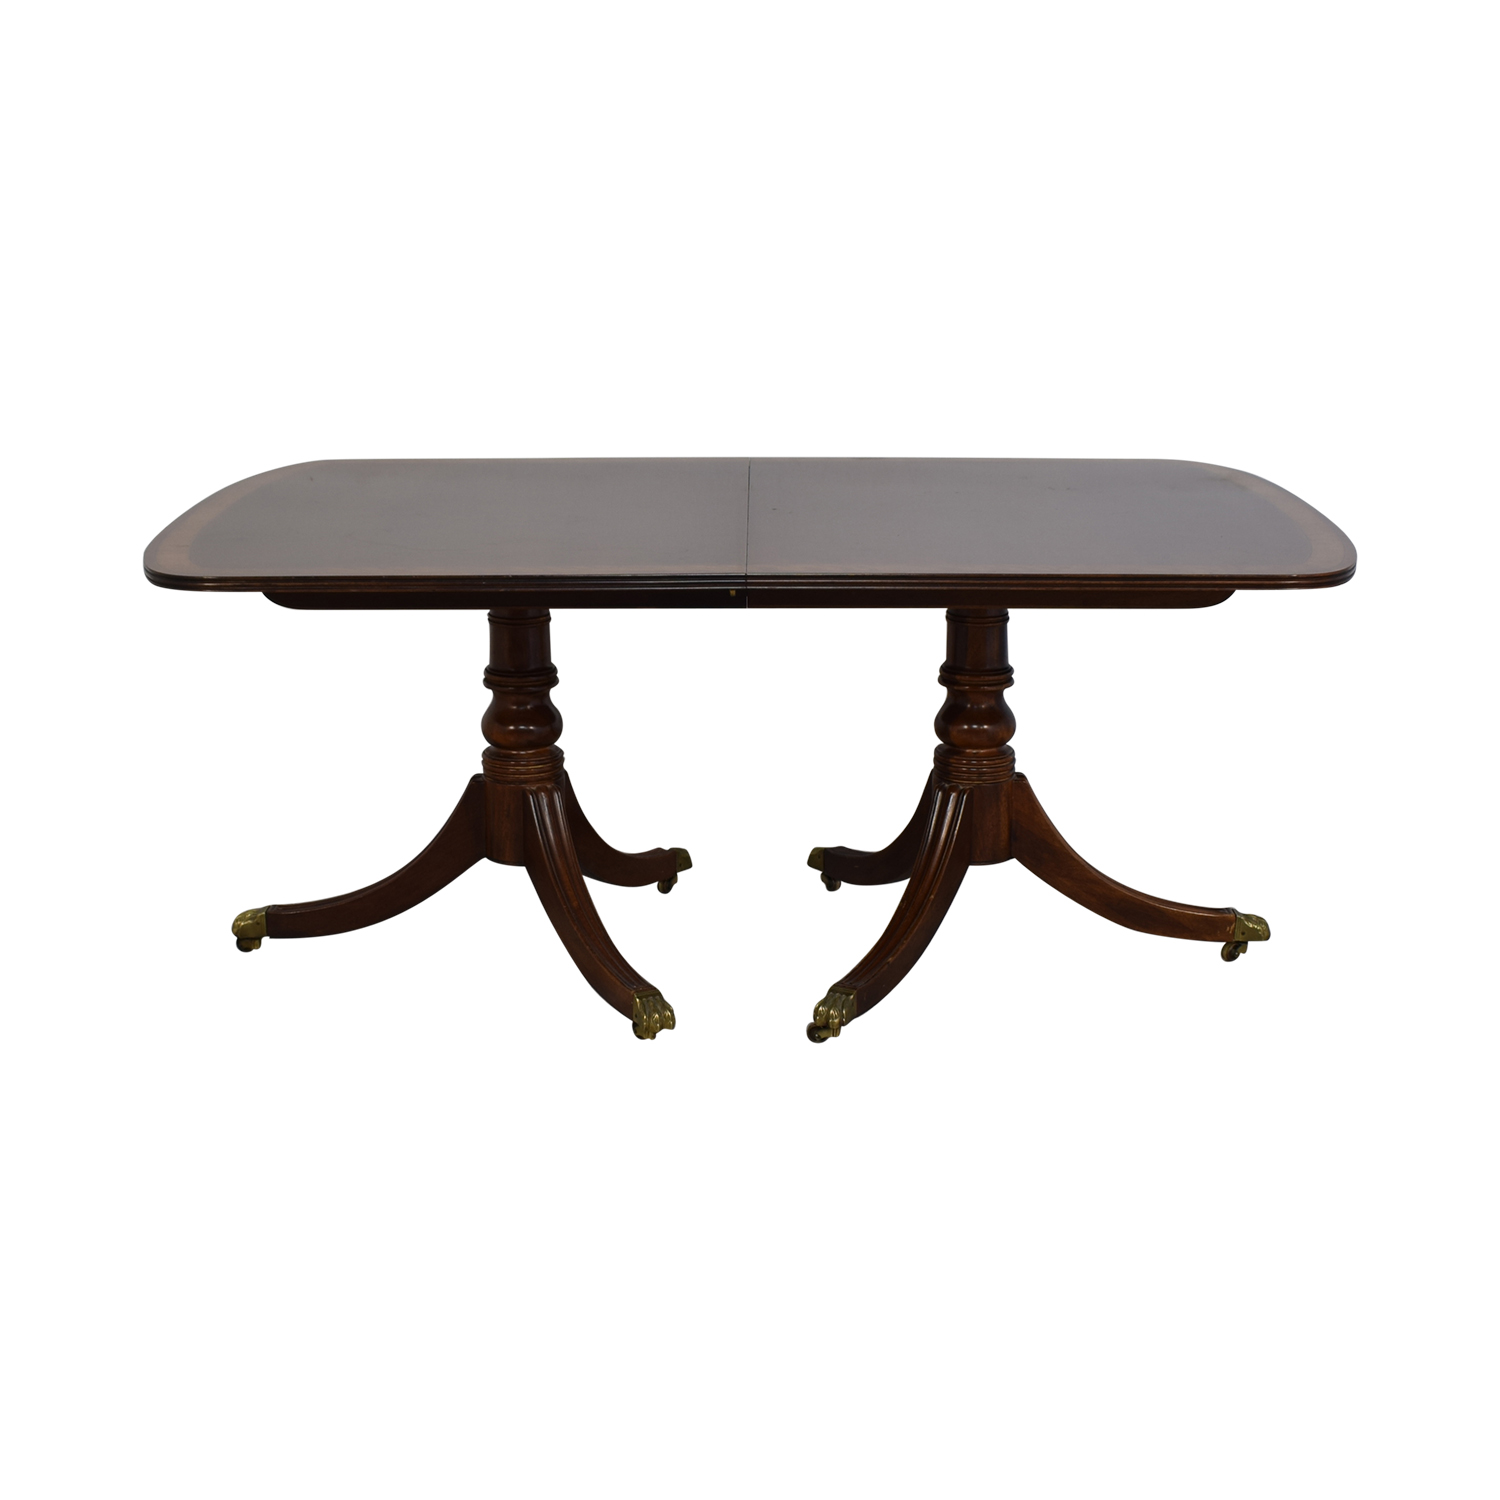 81% OFF - Henredon Furniture Henredon Dining Room Table / Tables